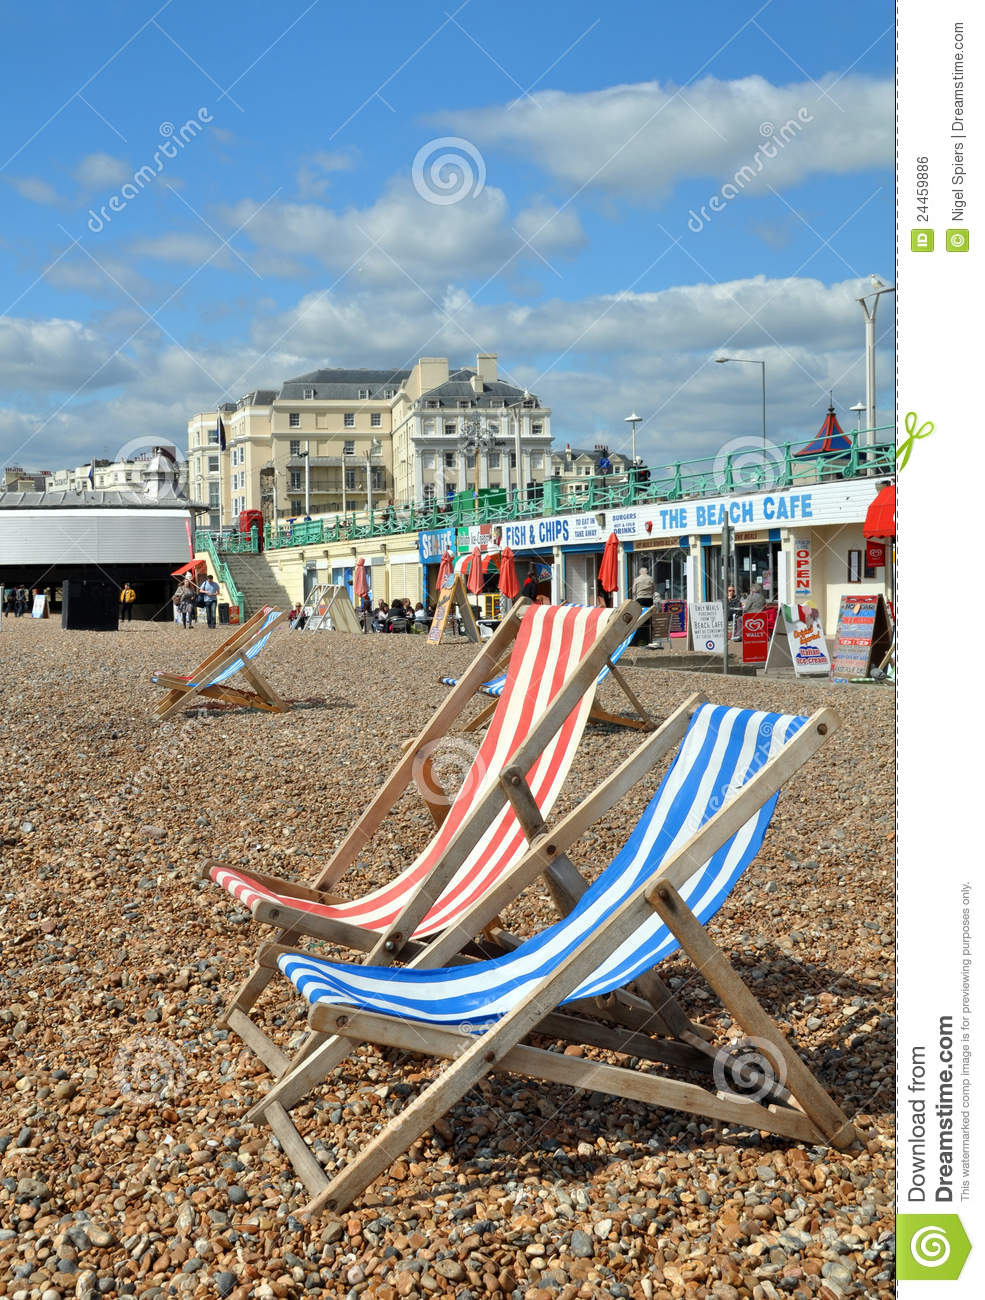 online dating brighton uk Looking for dating & singles events in brighton & hove from walks & parties to wine tastes & coffee dates try meyoo social for fun, friendships or romance.